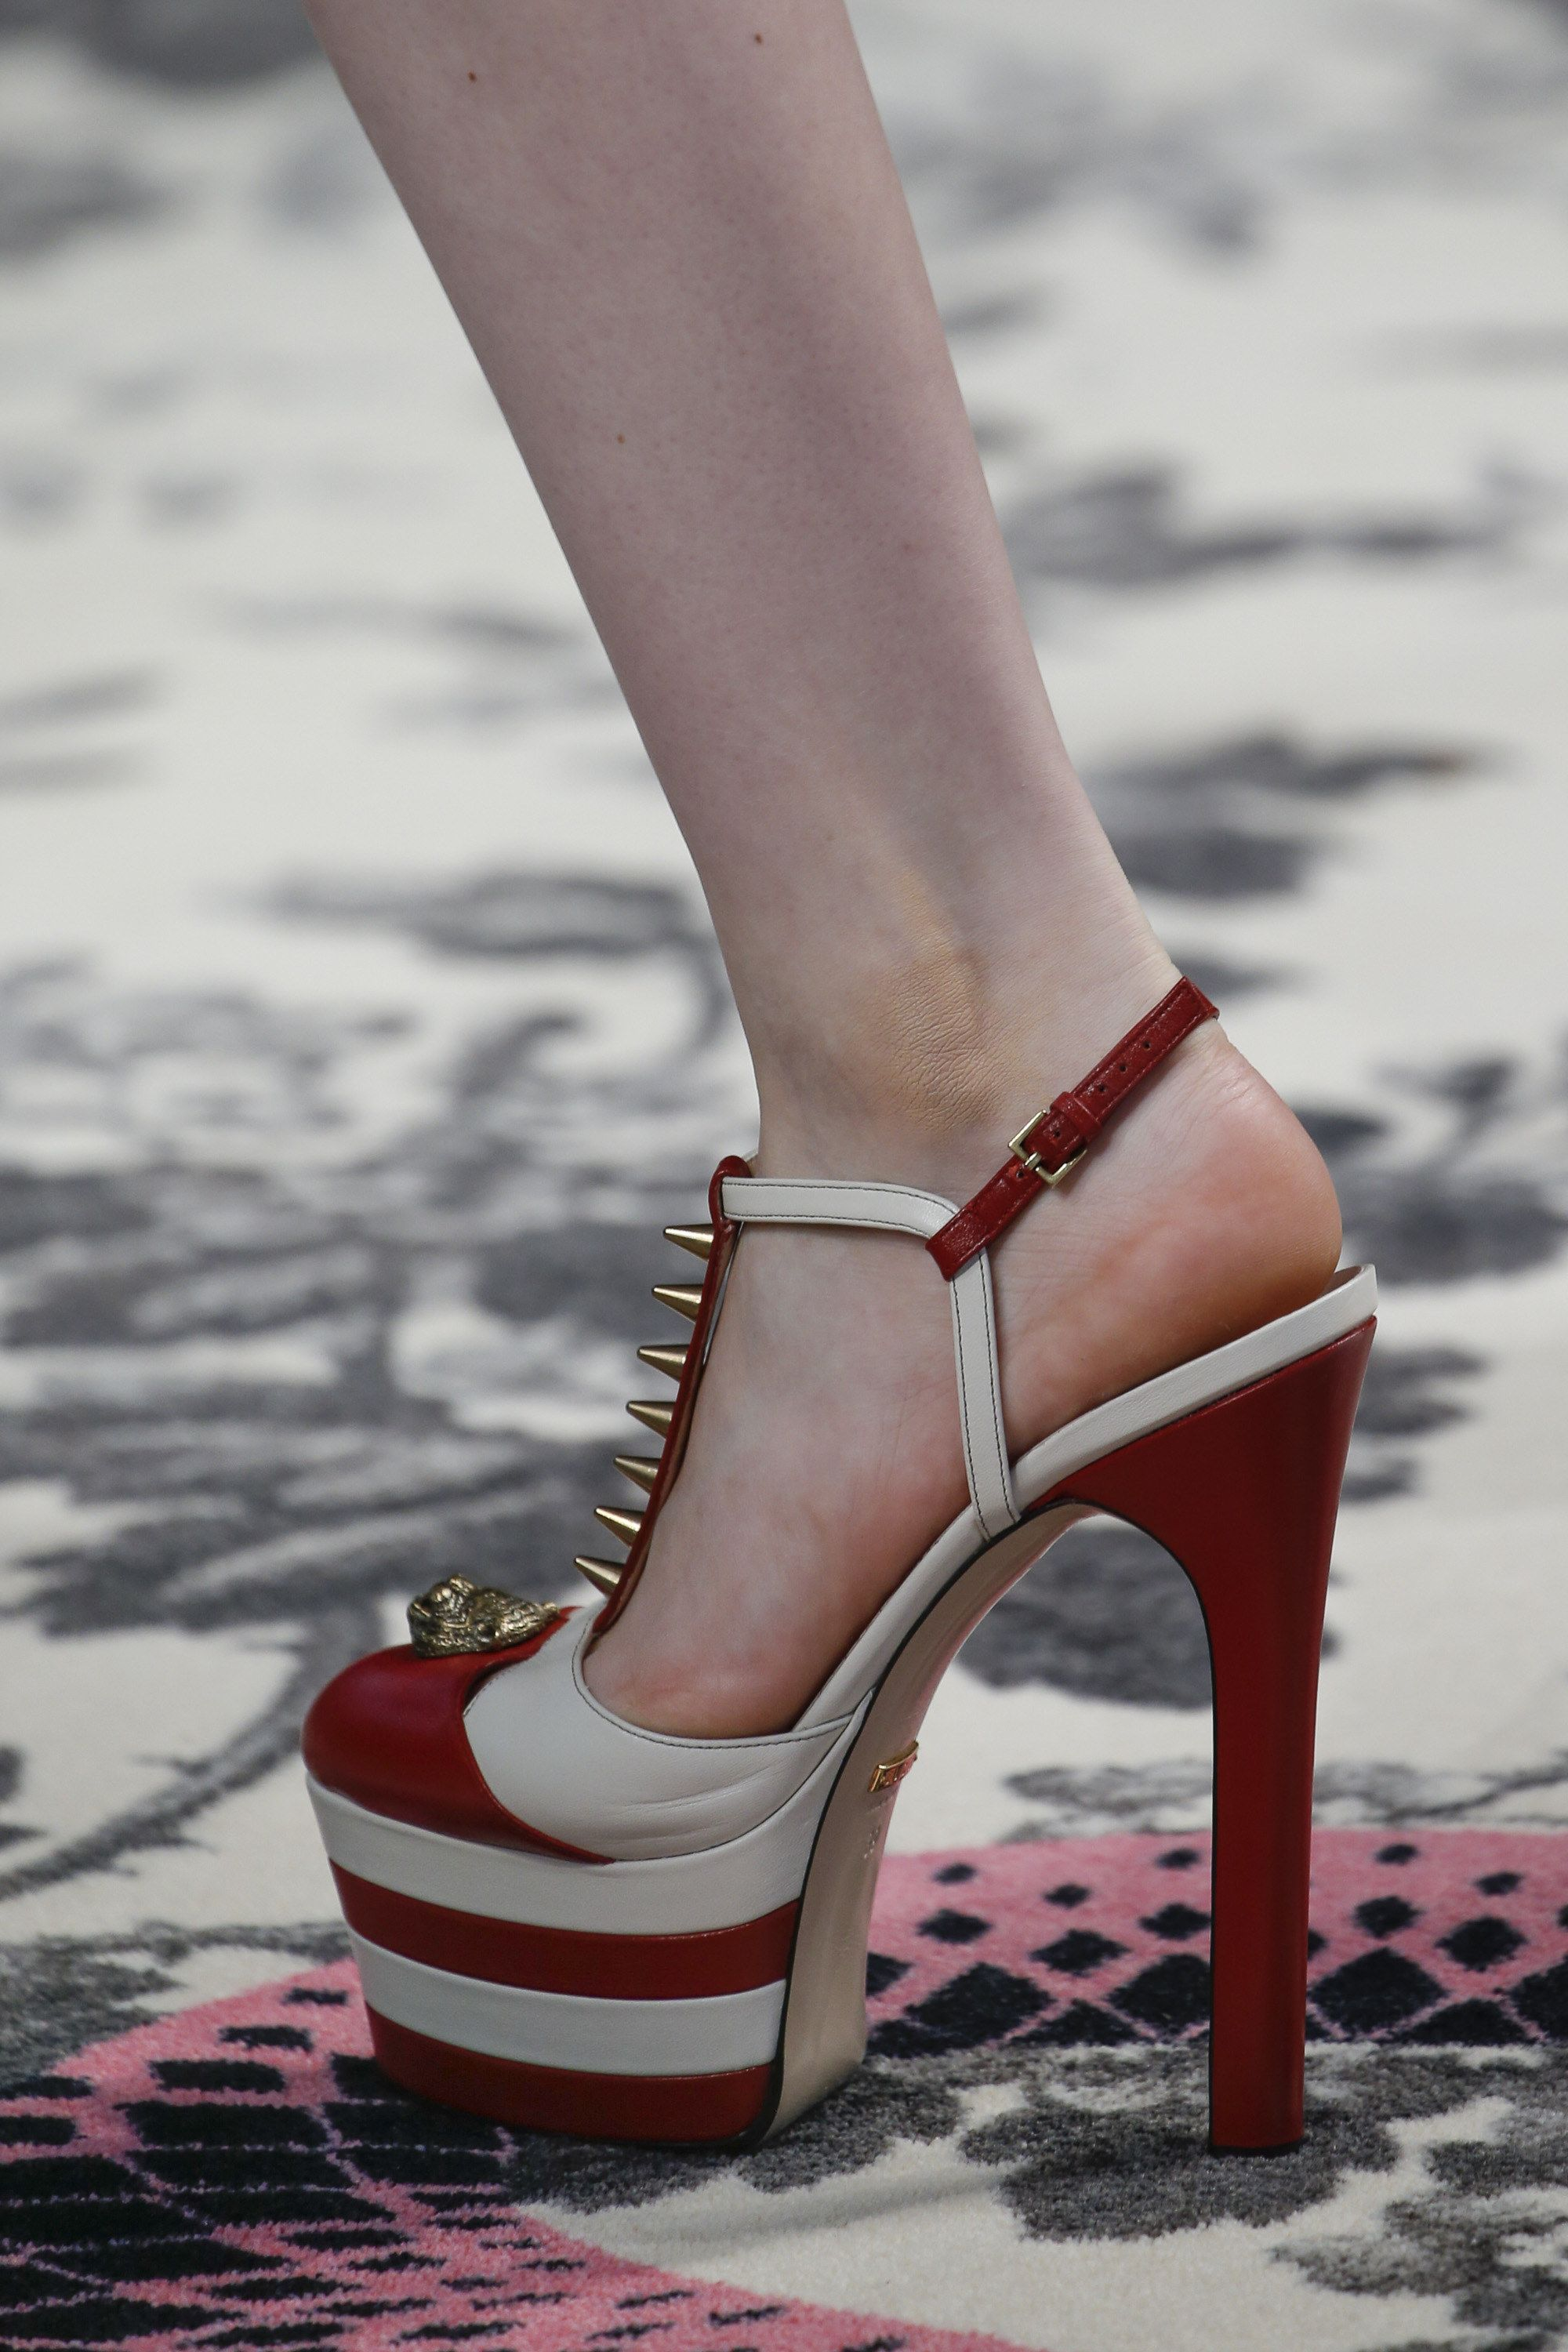 Le Meilleur Gucci Spring 2016 Ready To Wear Fashion Show Pumps Ce Mois Ci